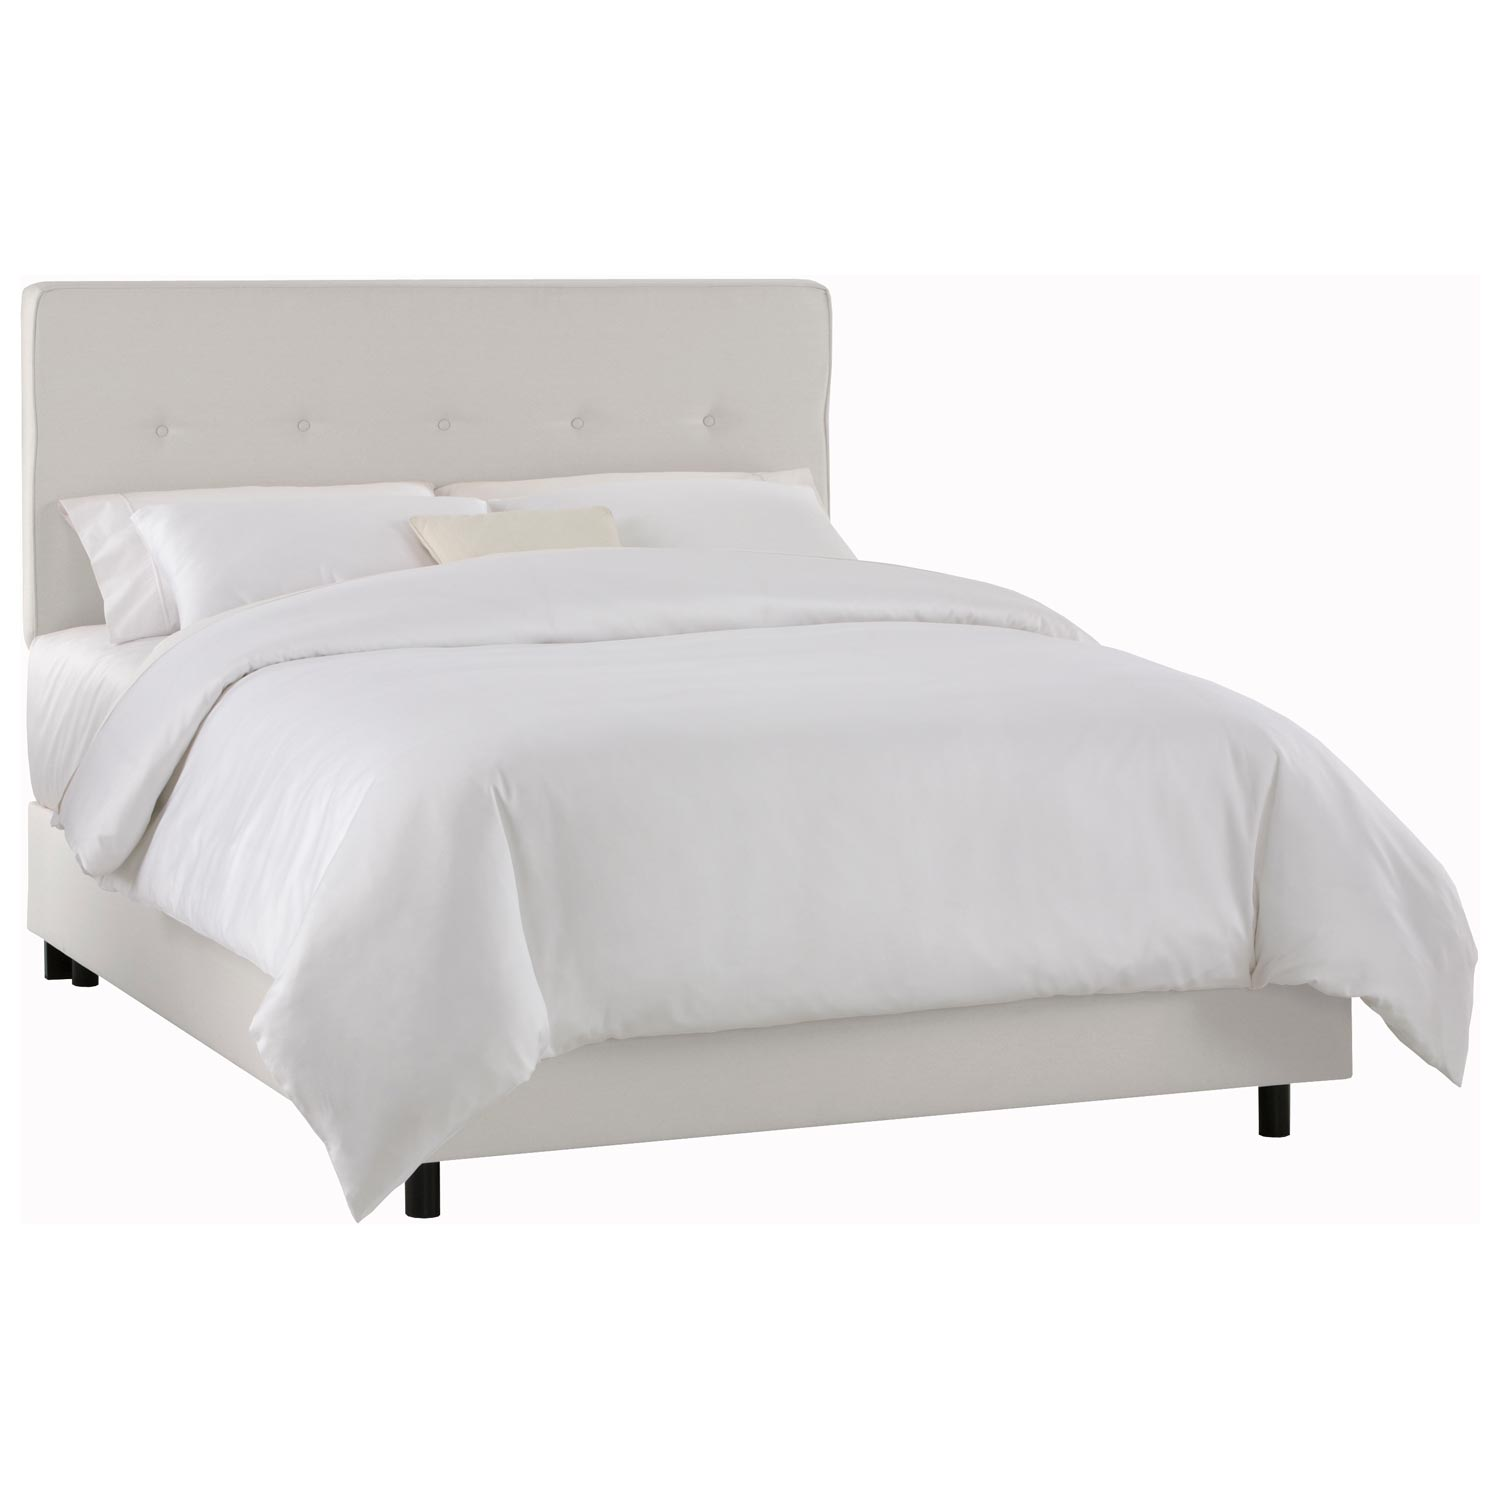 Cassiopeia Upholstered Bed - Twill, Button Accents, White